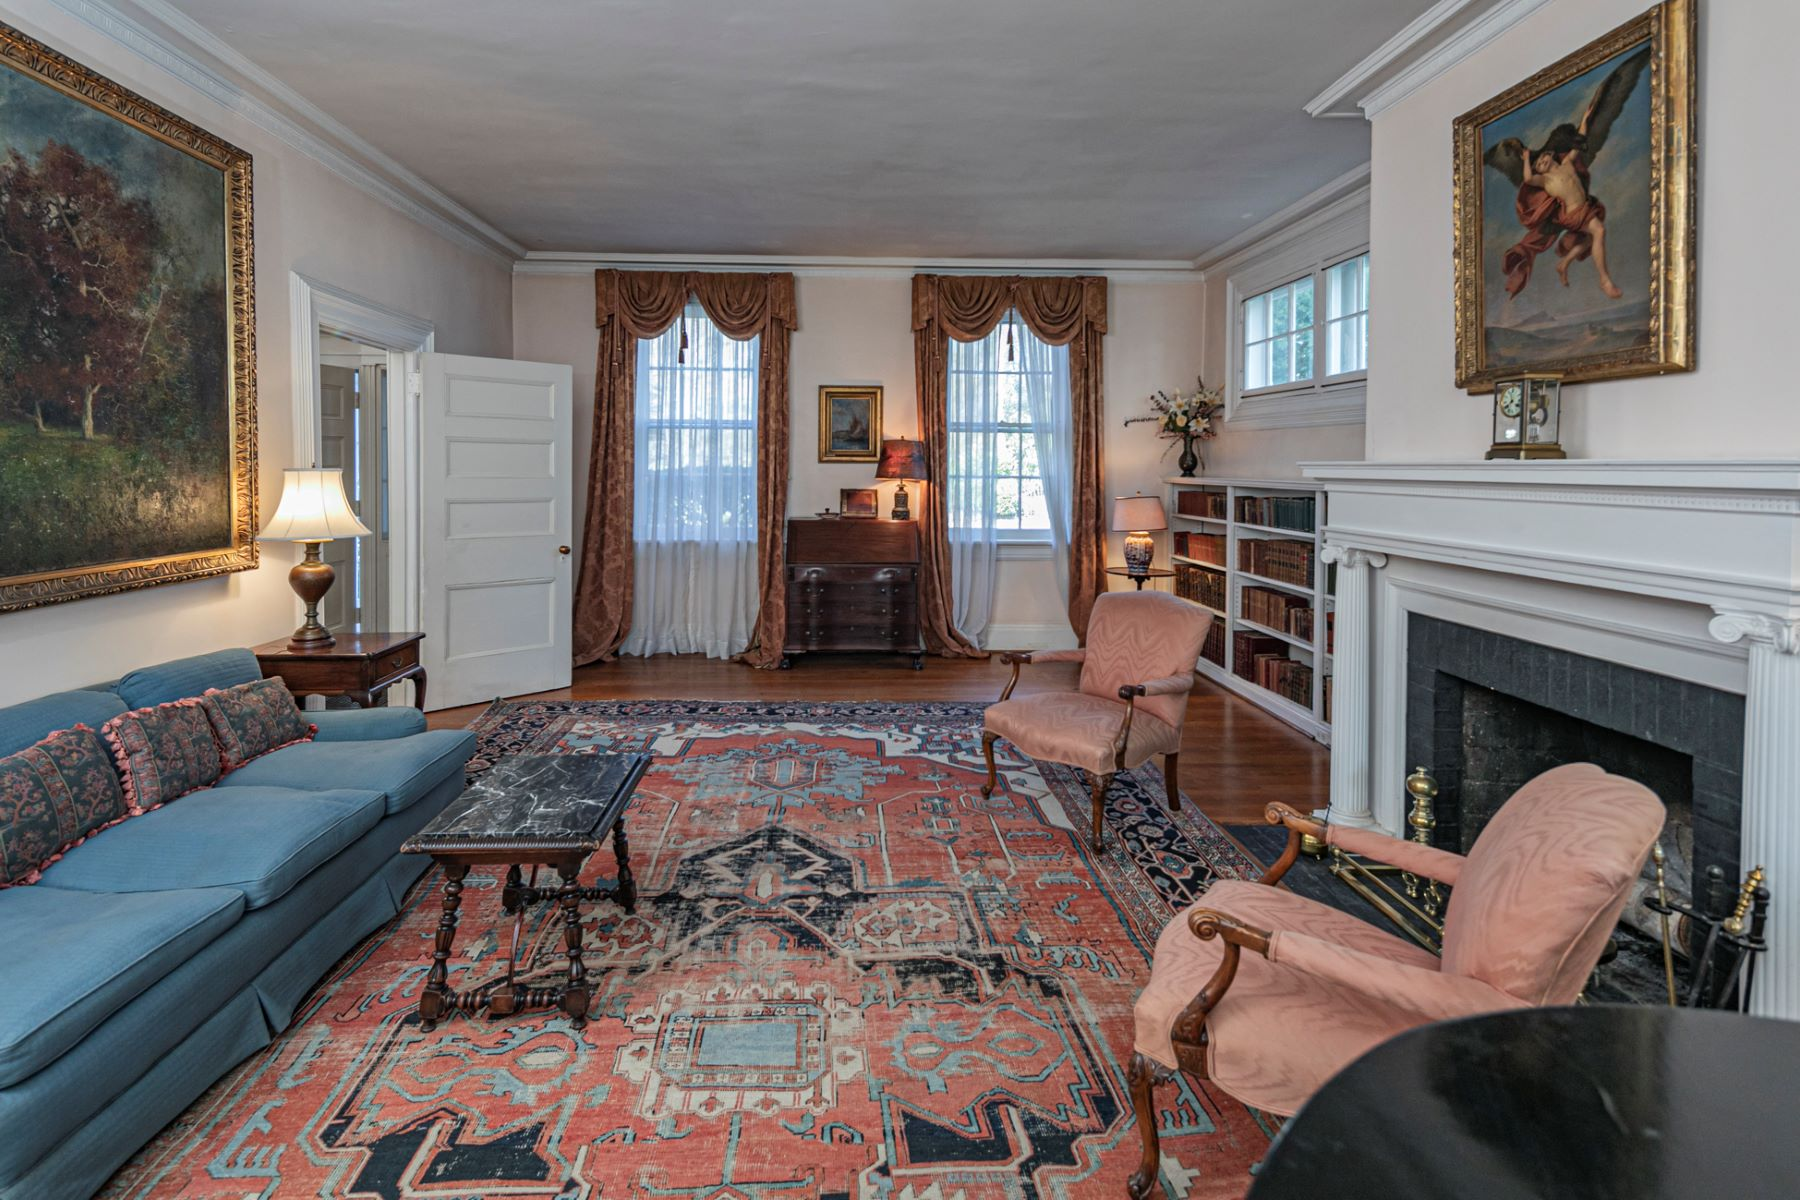 Additional photo for property listing at Glorious Greek Revival by Charles Steadman 86 Stockton Street, Princeton, New Jersey 08540 United States